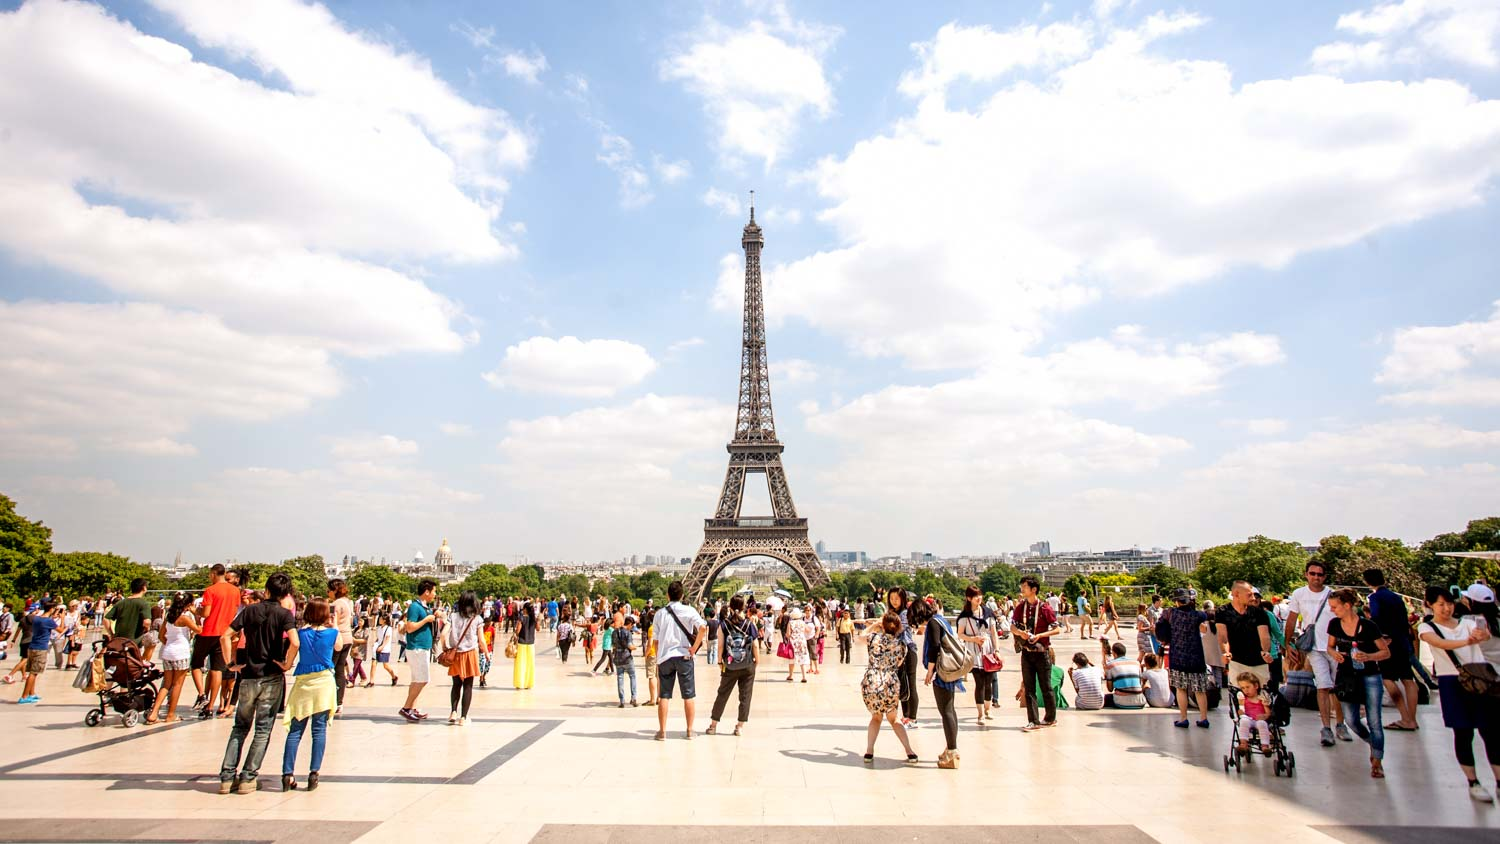 Eiffel Tower Paris Book Tickets Amp Tours Getyourguide